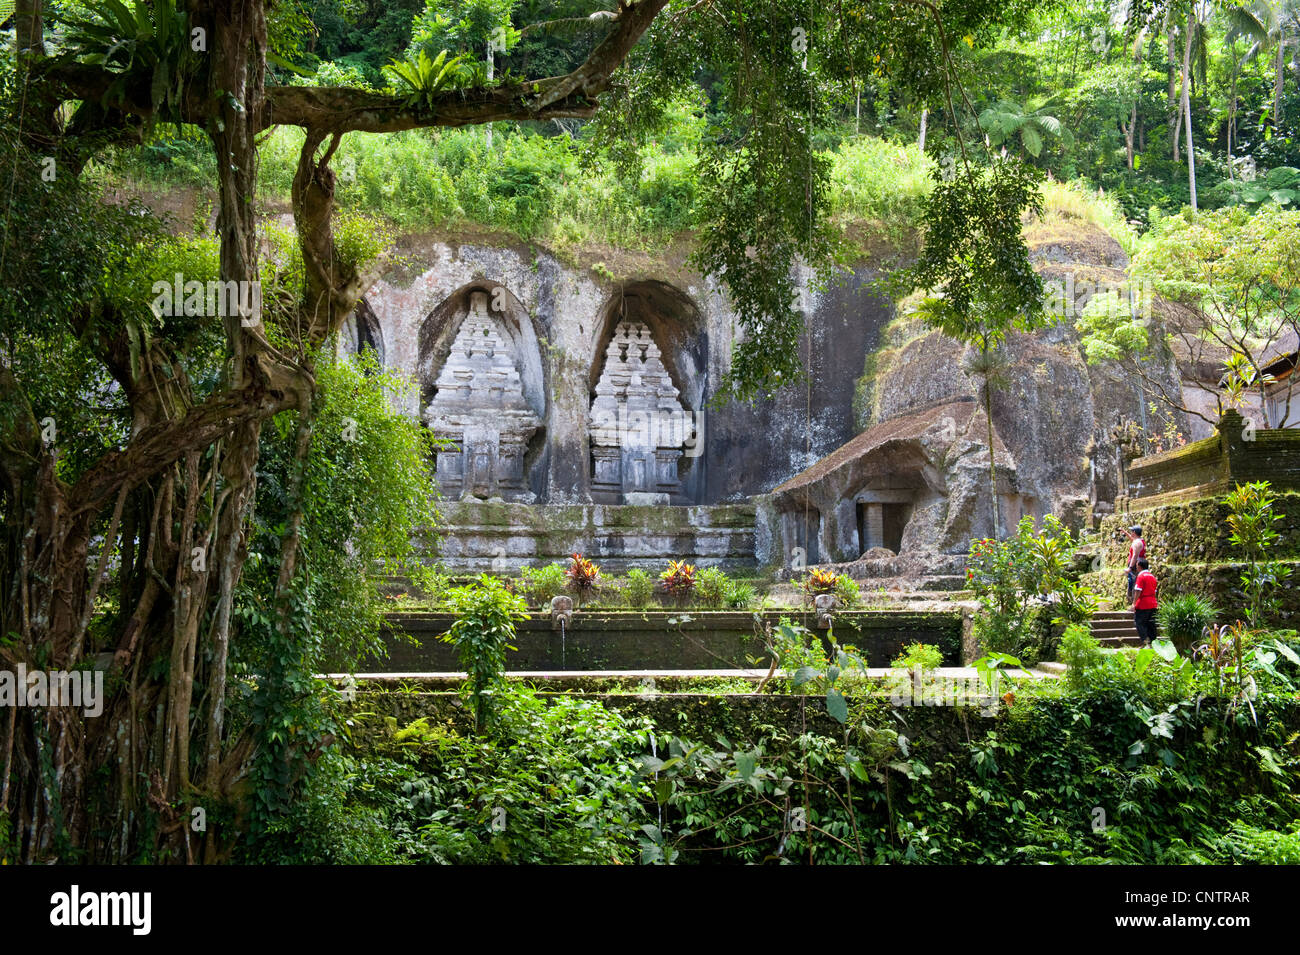 Gunung Kawi is an 11th century temple complex in Tampaksiring north east of Ubud in Bali, Indonesia. - Stock Image